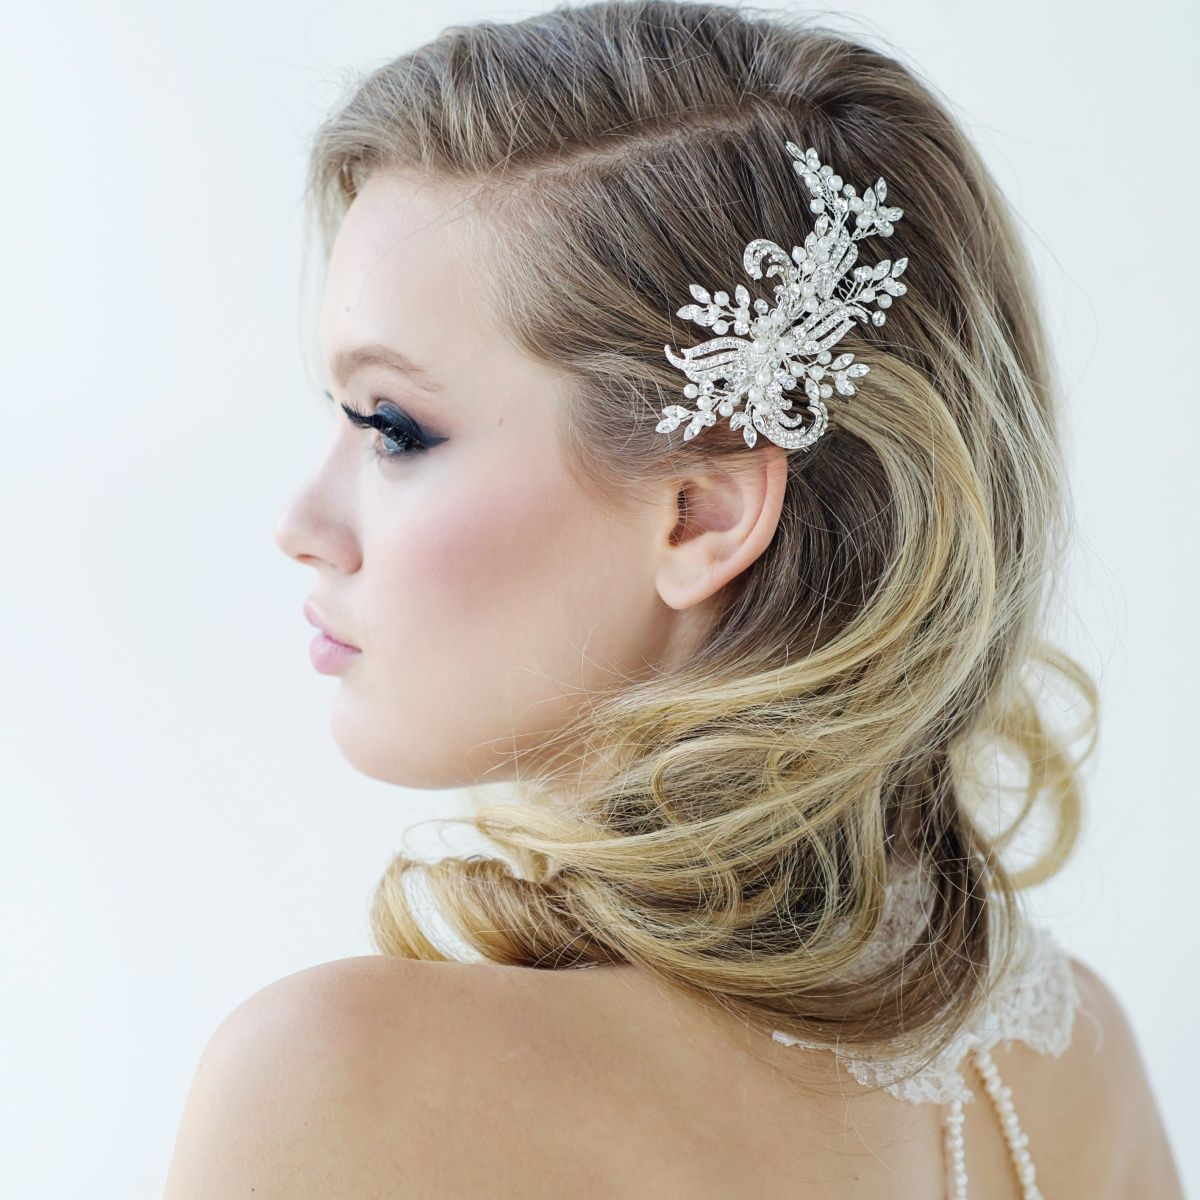 Hair accessories melbourne - Side Swept Hair With Hair Comb